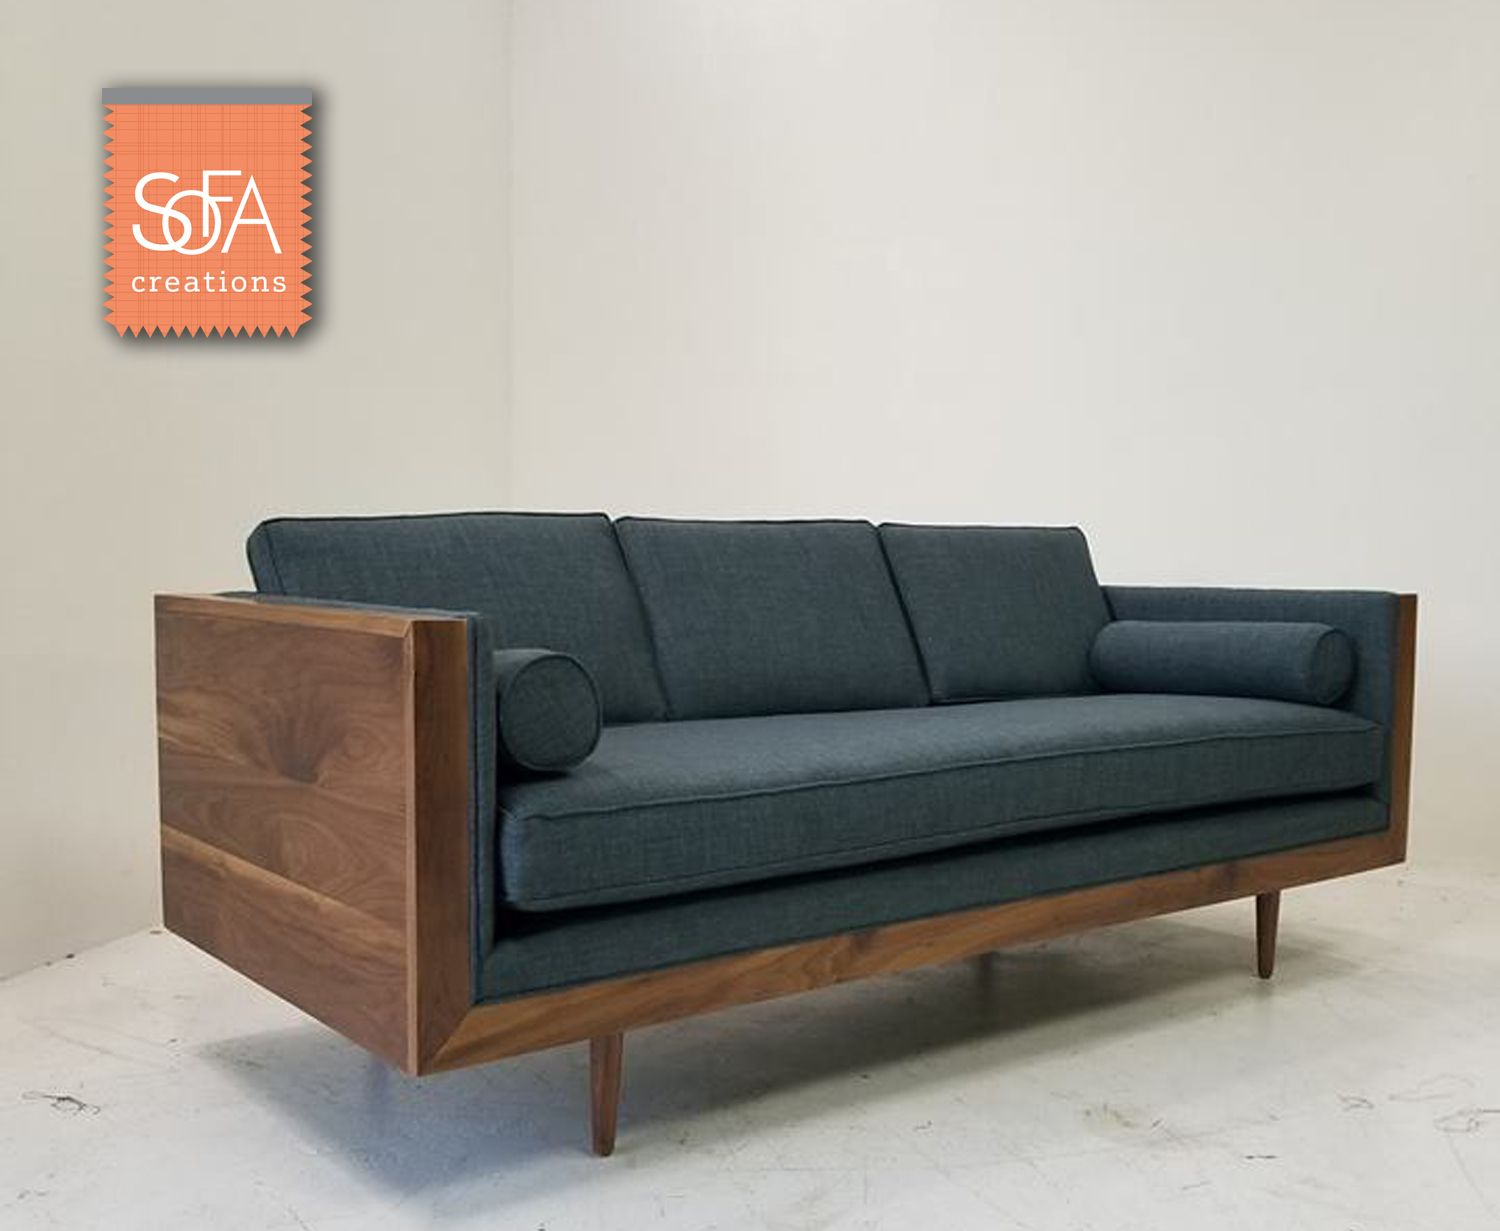 Walnut Pillow Back Sofa Add Some Warmth To Your Living Room With This Wood Encased Mid Century Modern Creations Couch